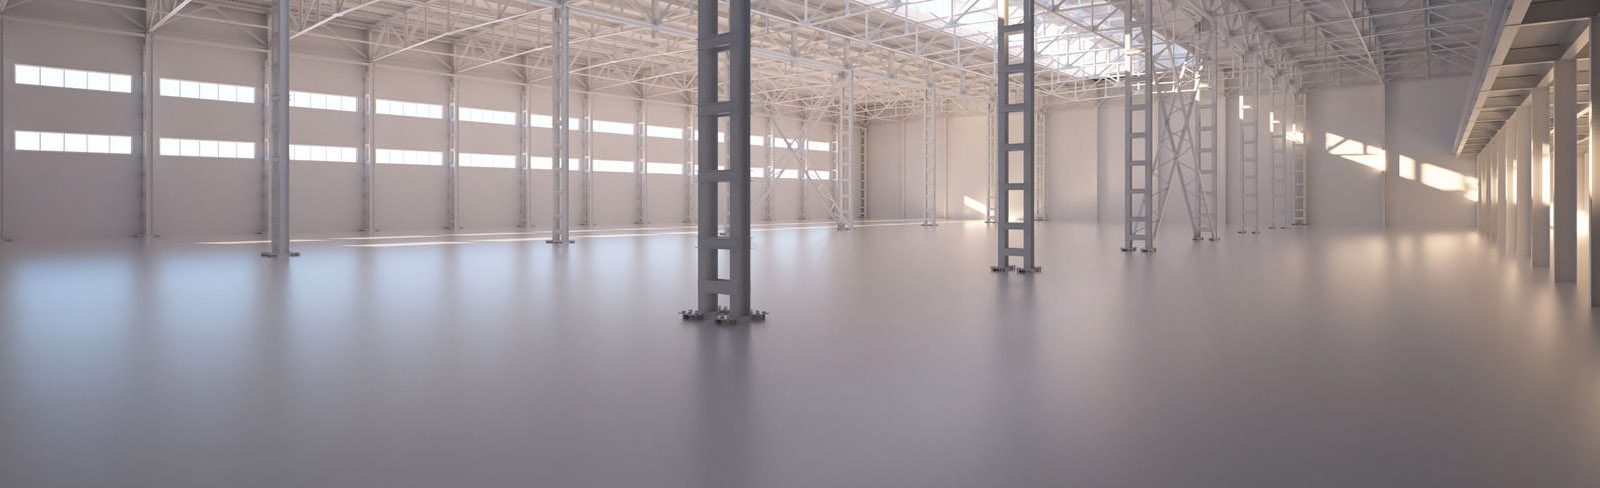 specotech specializes in epoxy floor coating for industrial and commercial floor coating